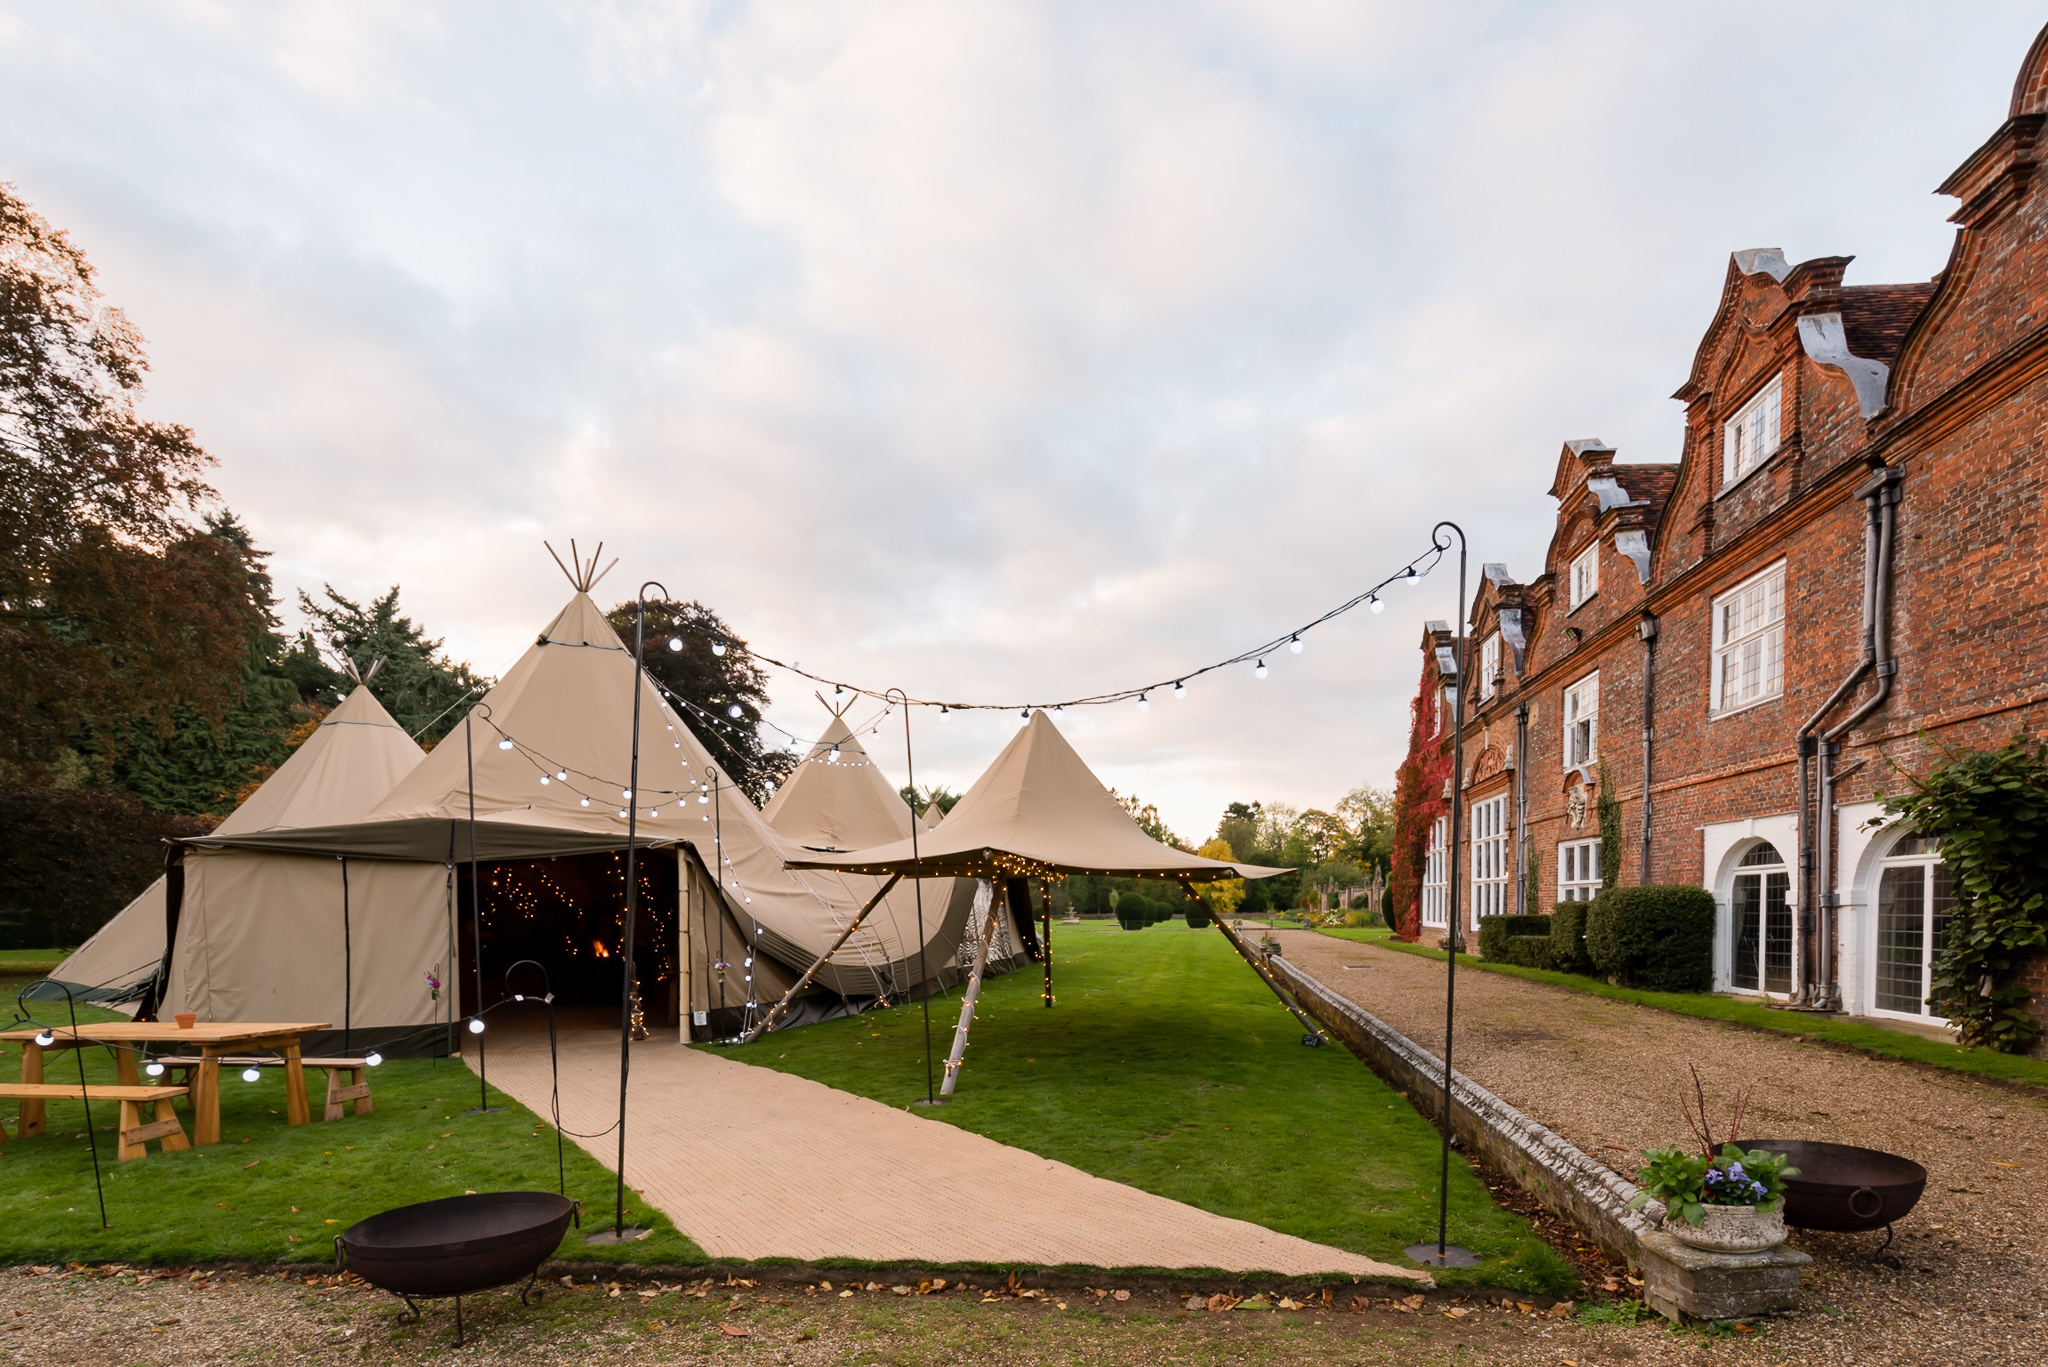 Tipis4Hire open day at Rothamsted Manor